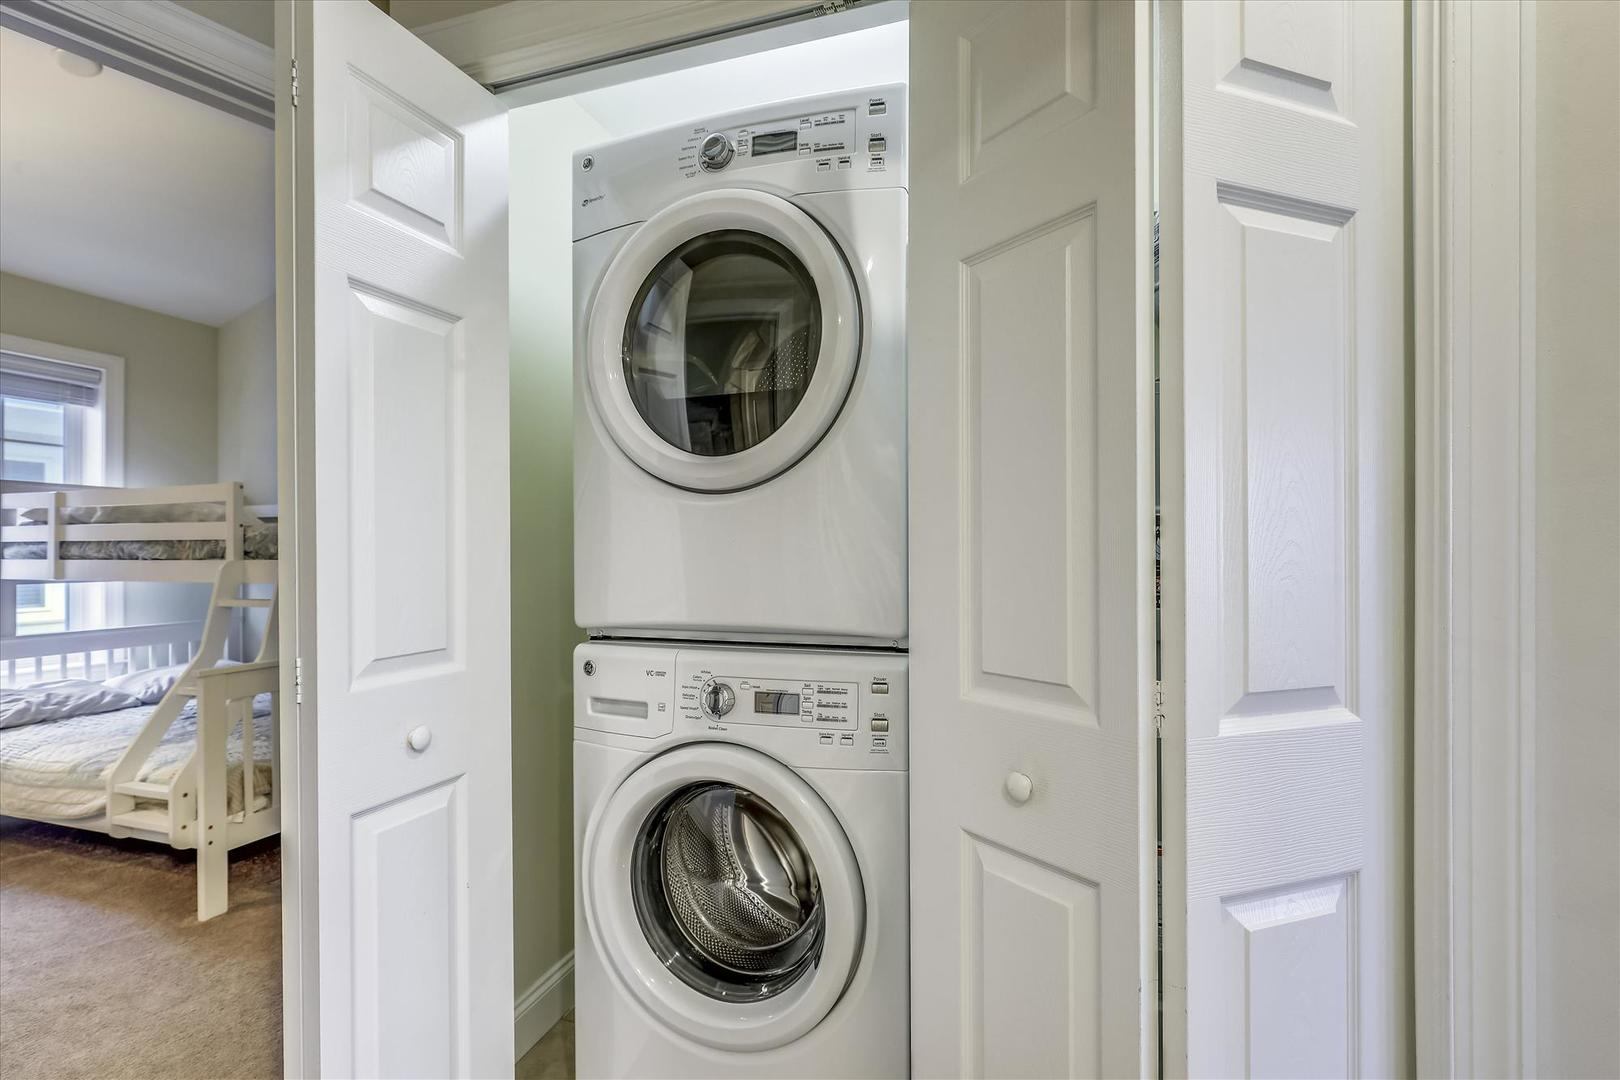 Sunburst 110 - Washer and Dryer